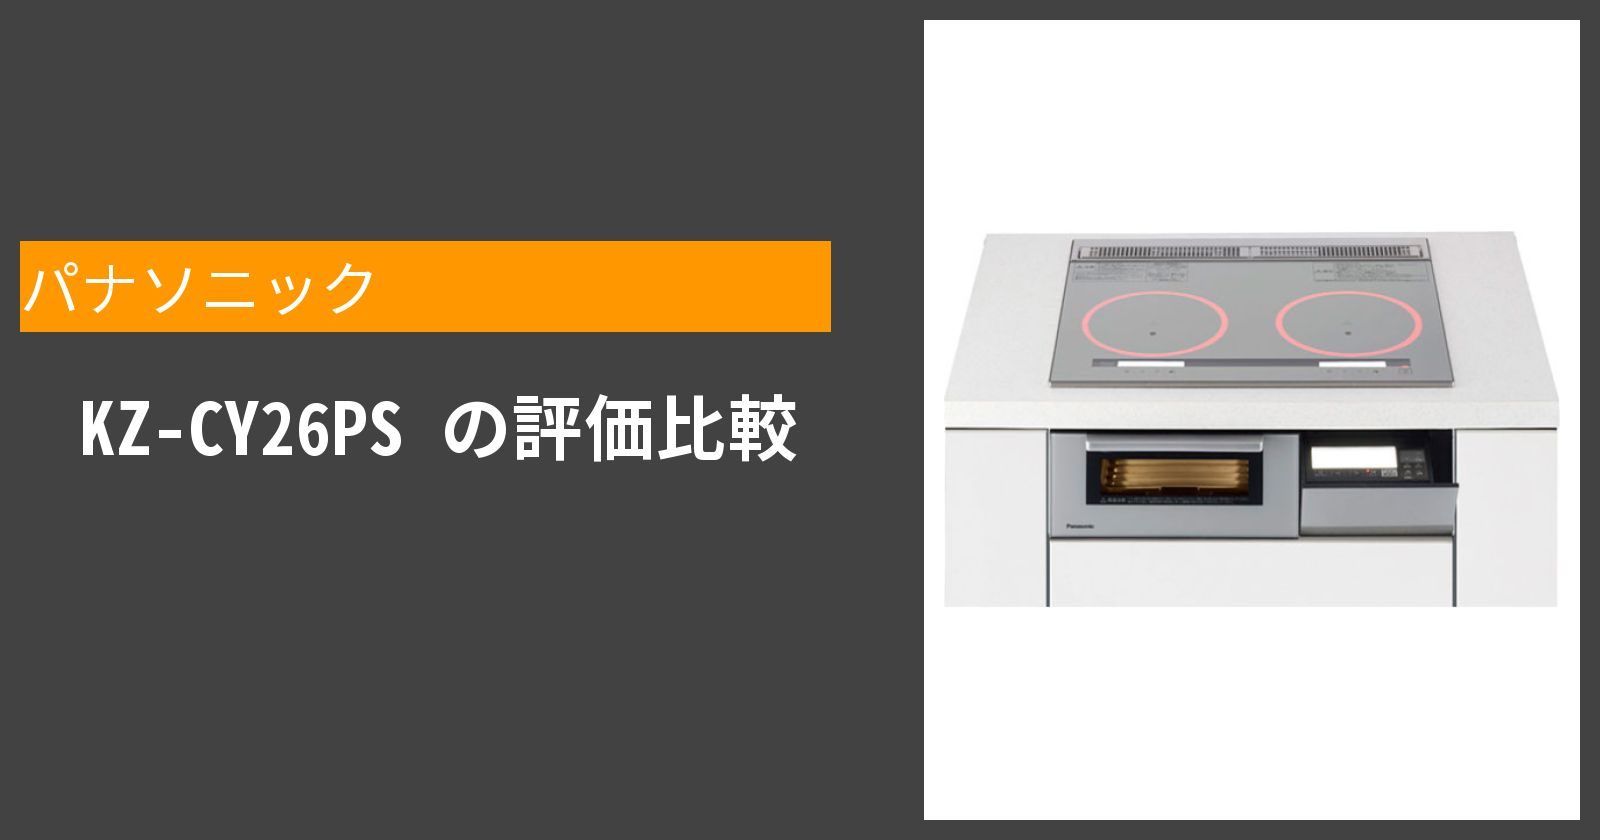 KZ-CY26PSを徹底評価